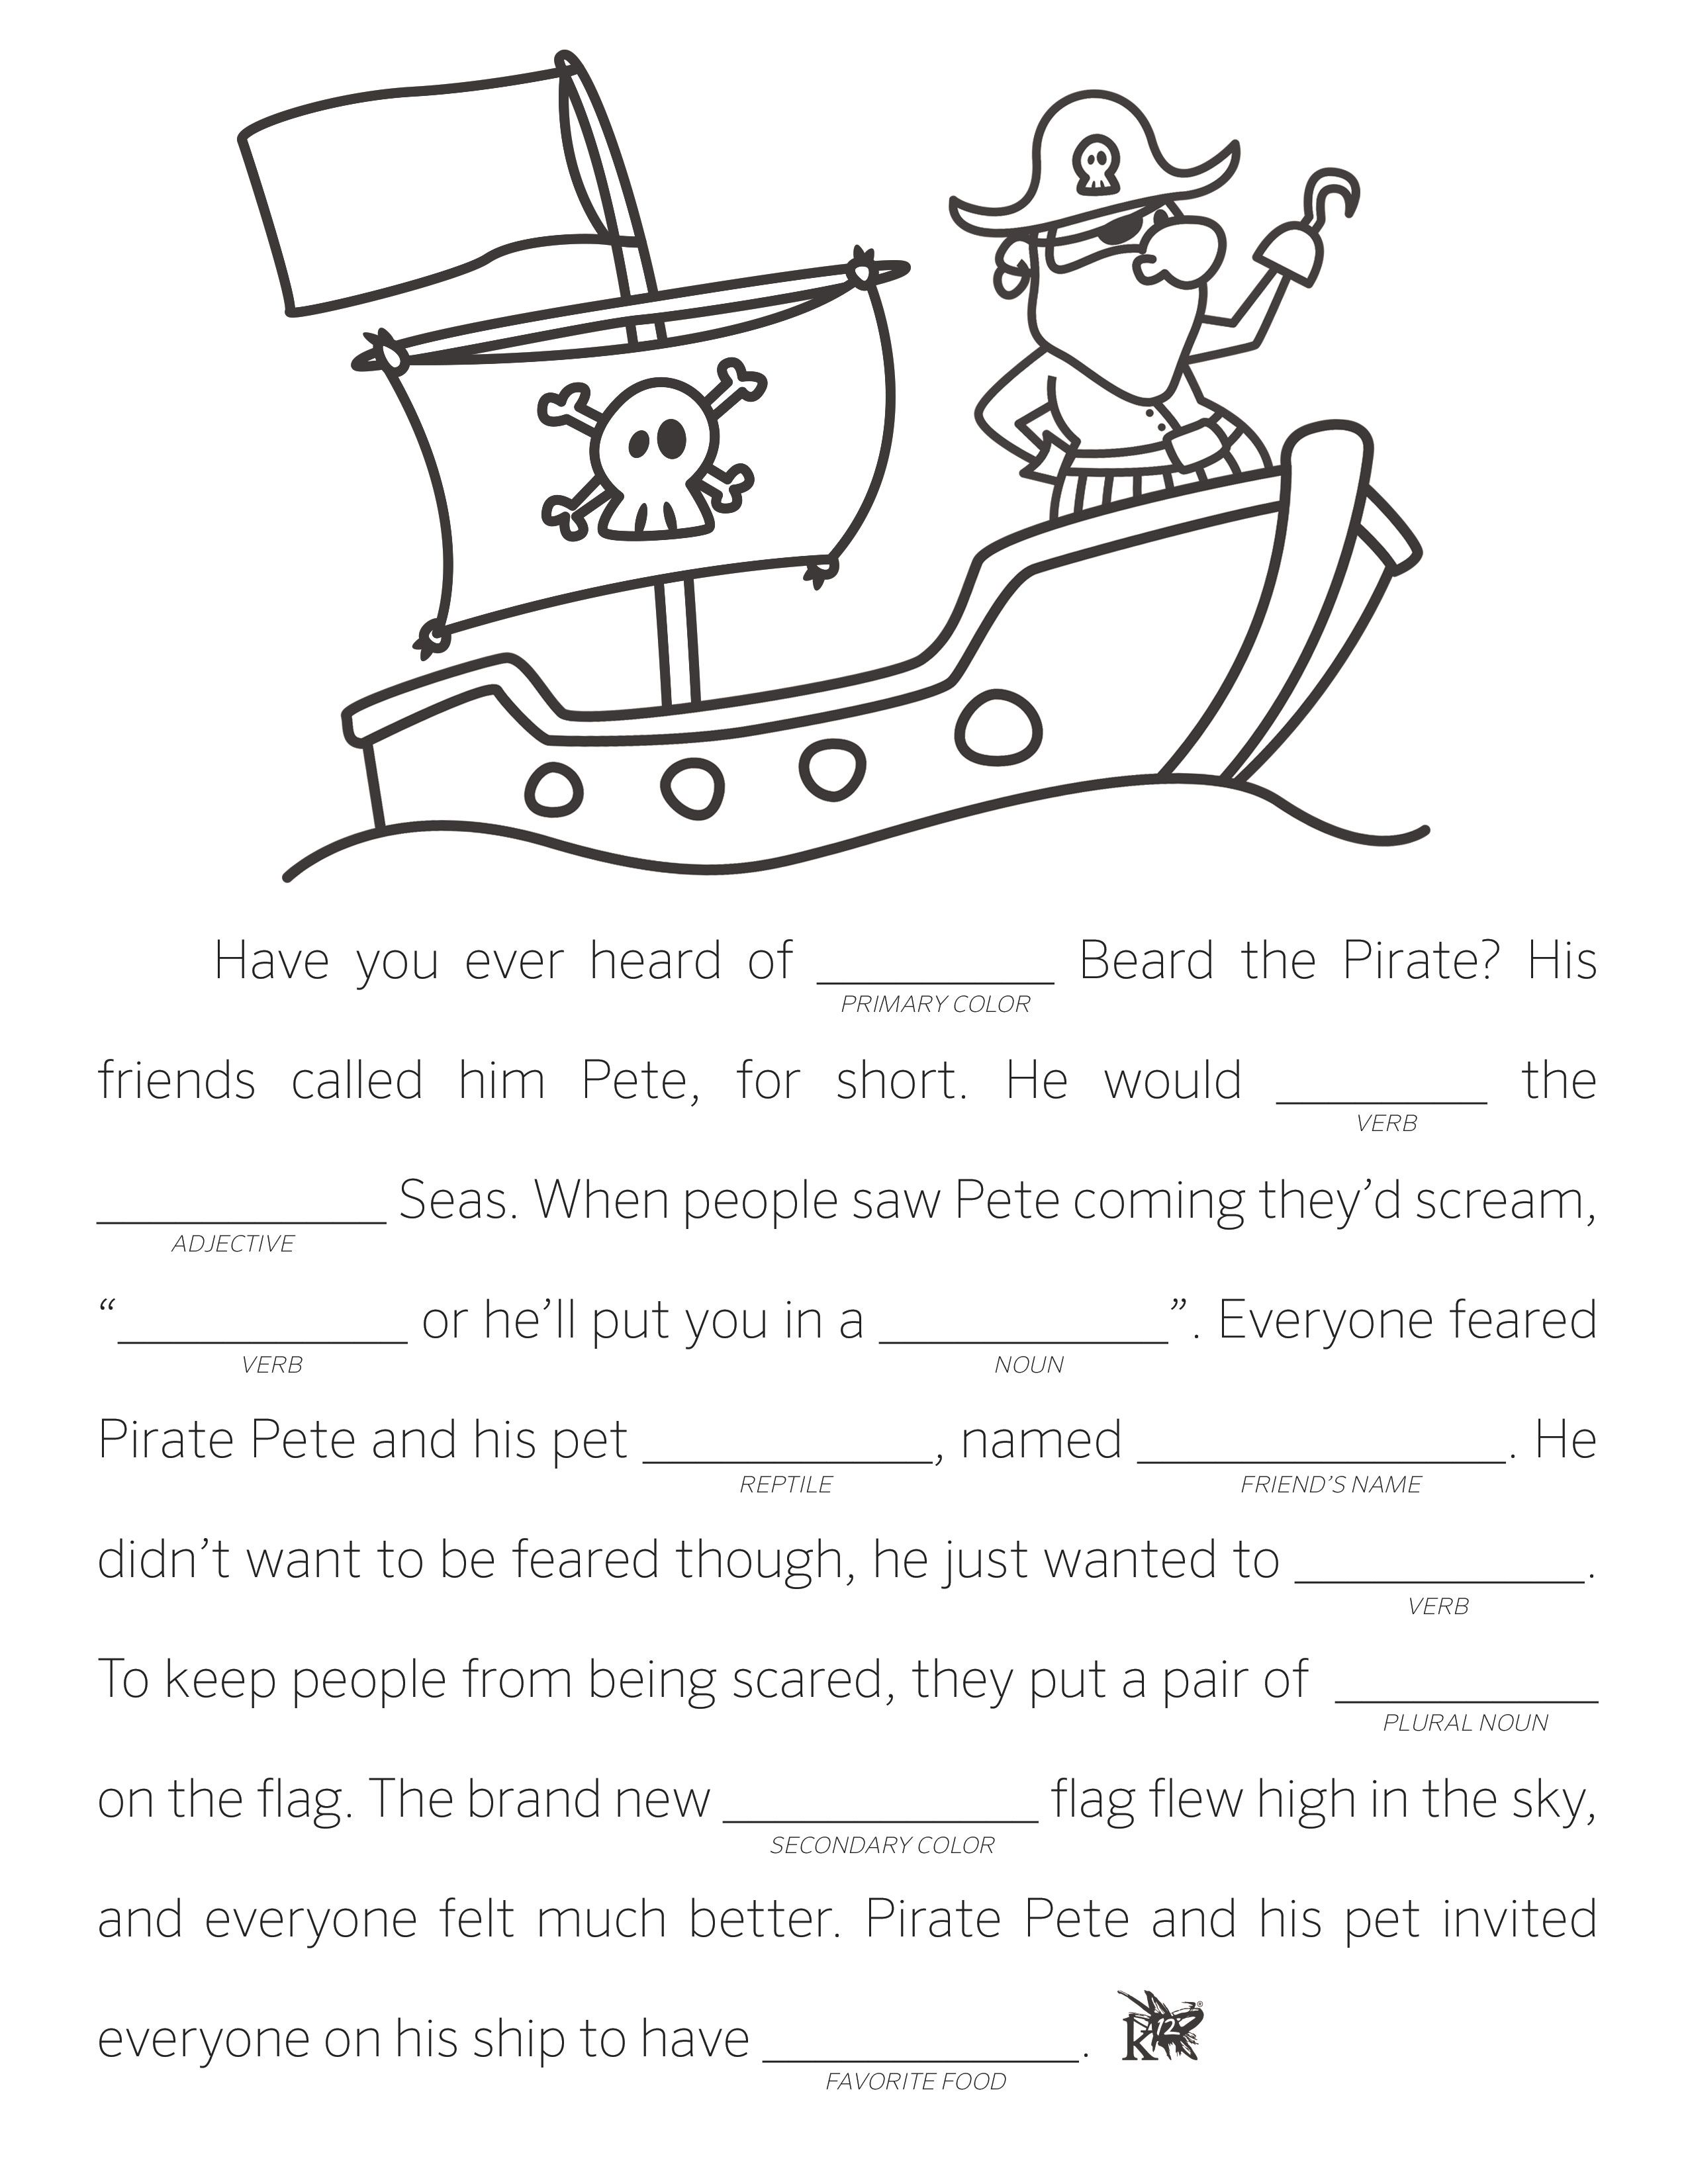 worksheet How To Make A Fill In The Blank Worksheet make your own fill in the blank stories language arts free learning liftoff